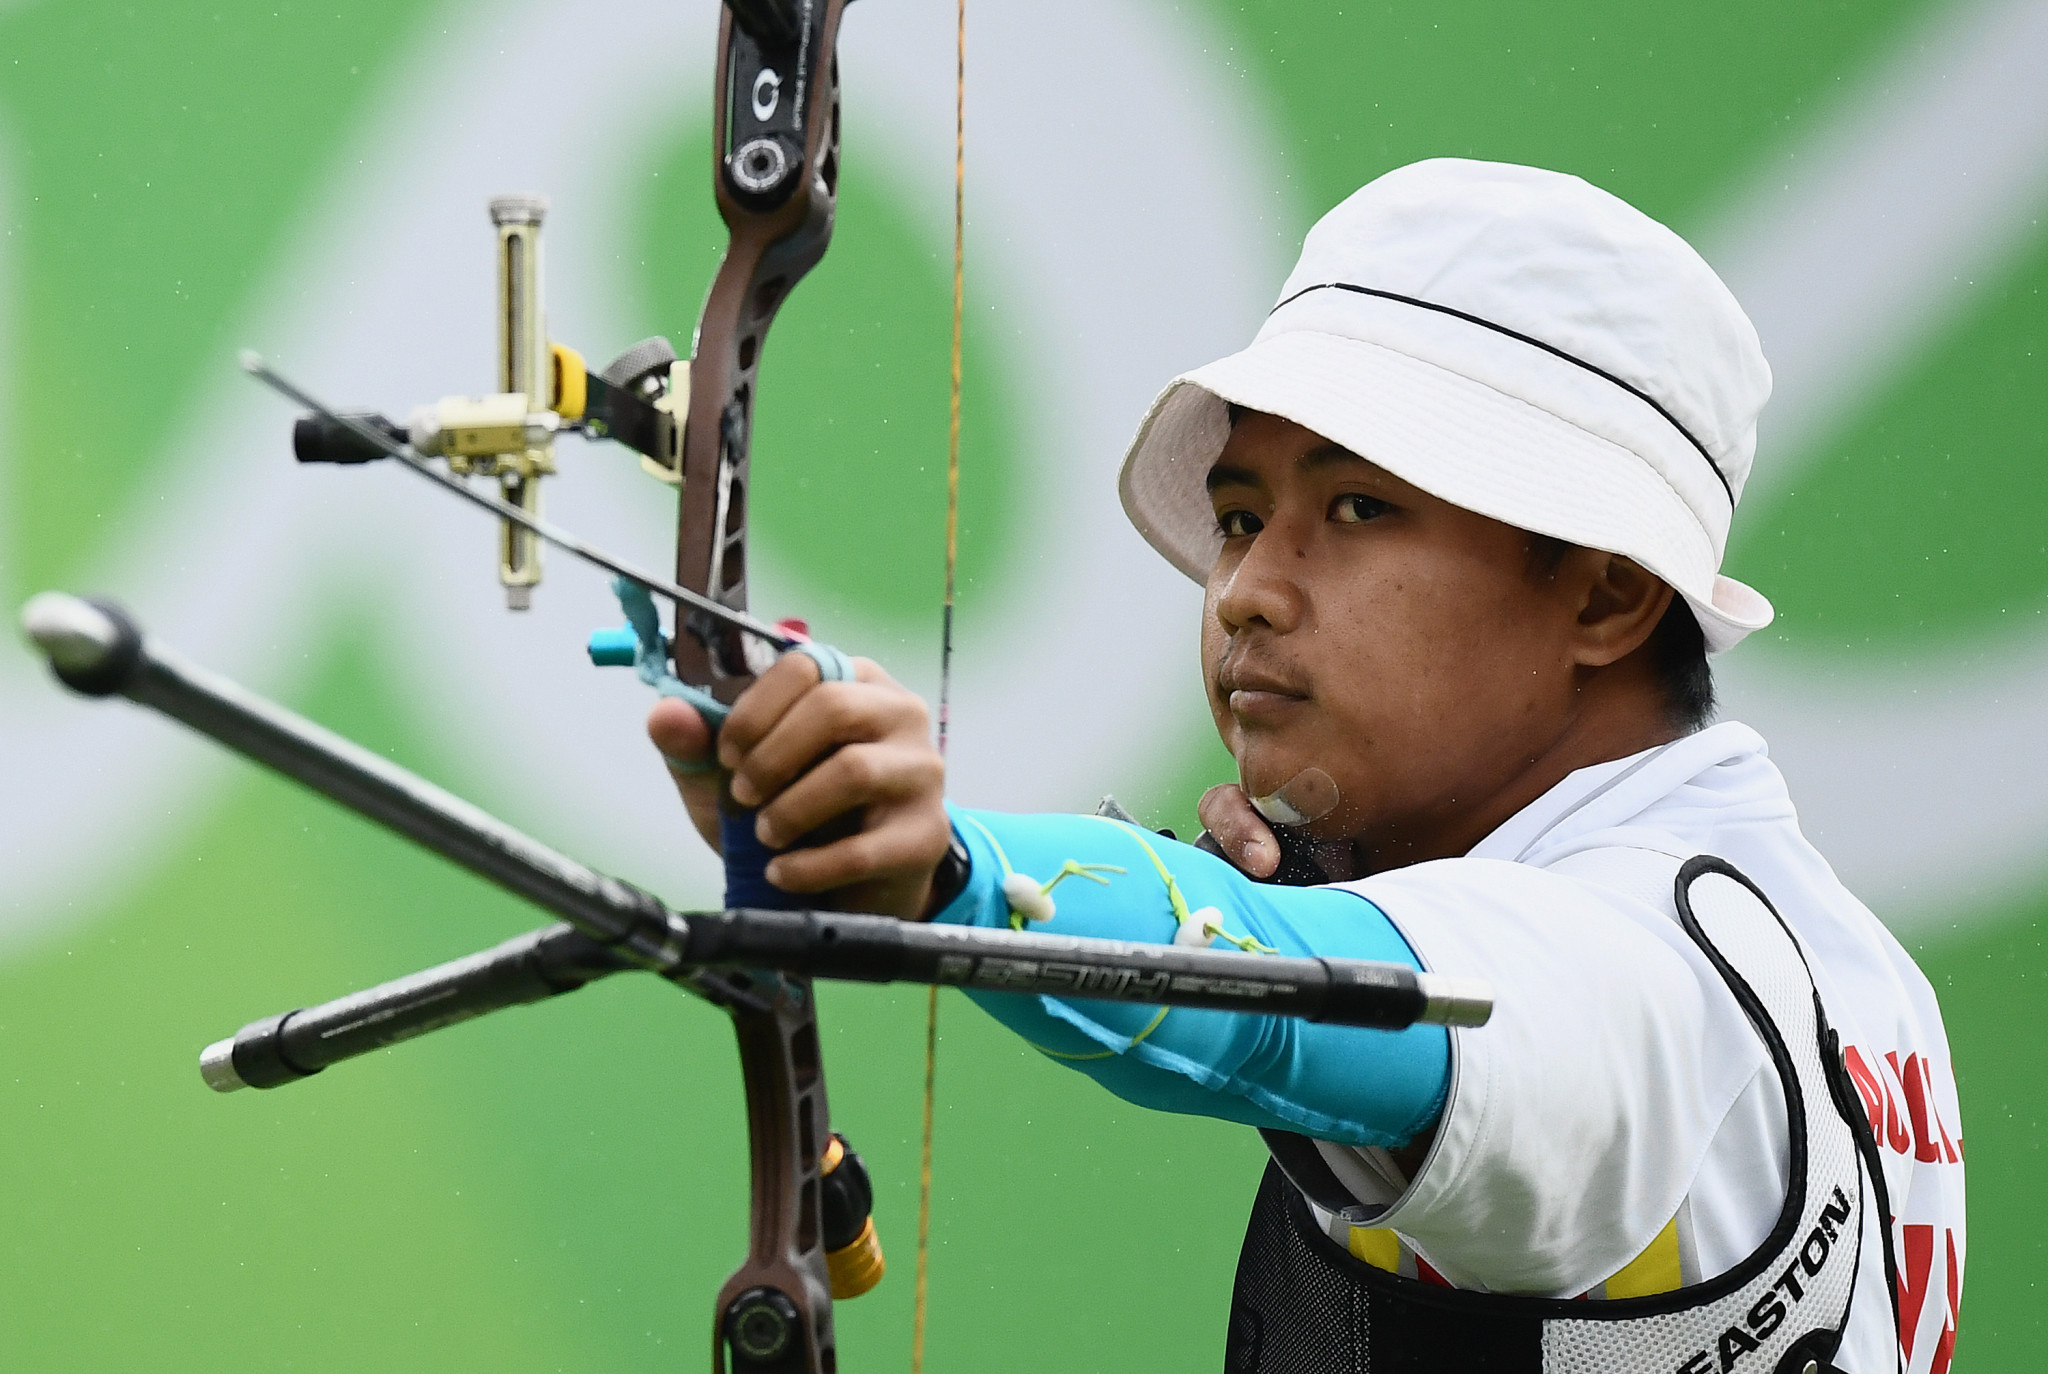 Hosts reach archery final at Asian Games 2018 test event